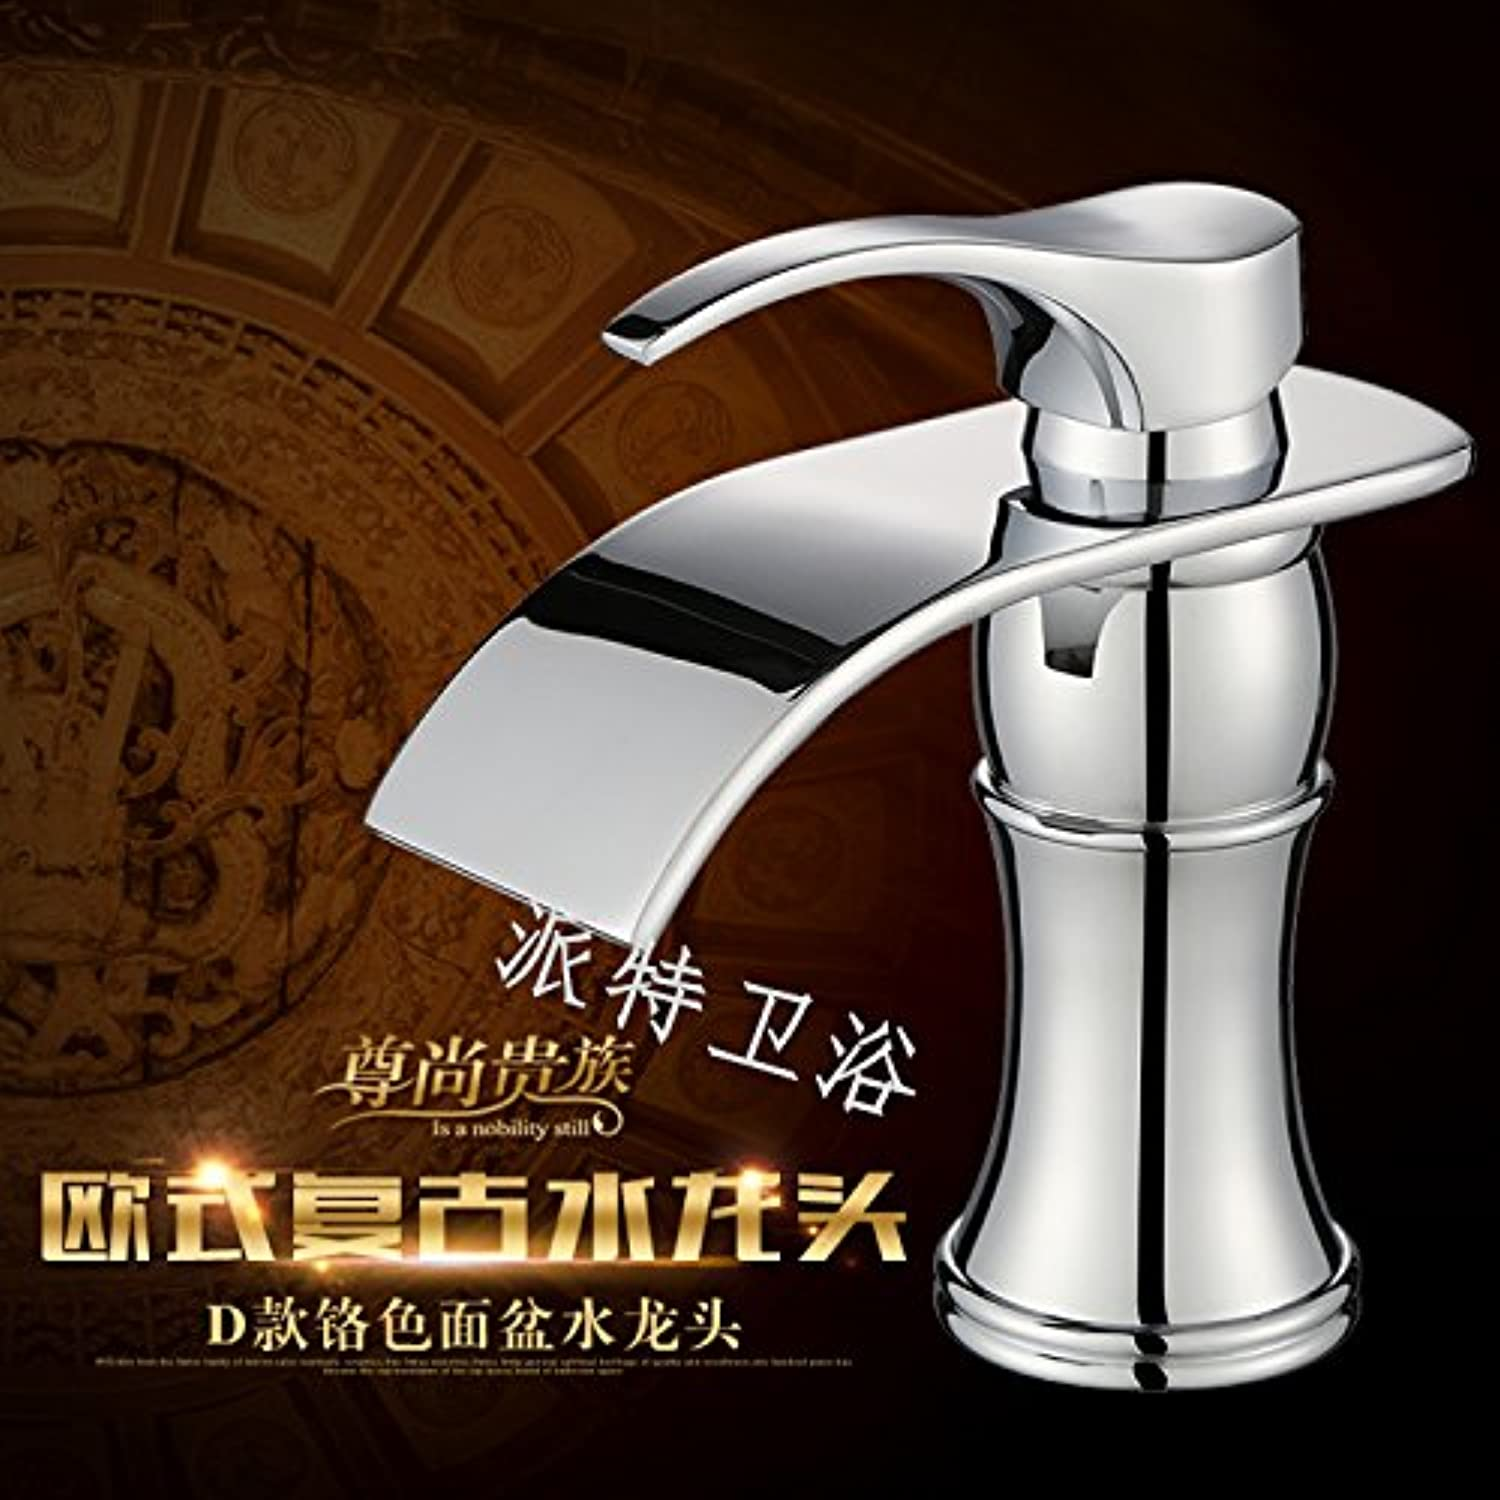 Bijjaladeva Bathroom Sink Vessel Faucet Basin Mixer Tap solid brass retro-upper basin water faucet Ceramic Jade mix-and-match antique waterfall hot and cold water chrome plated